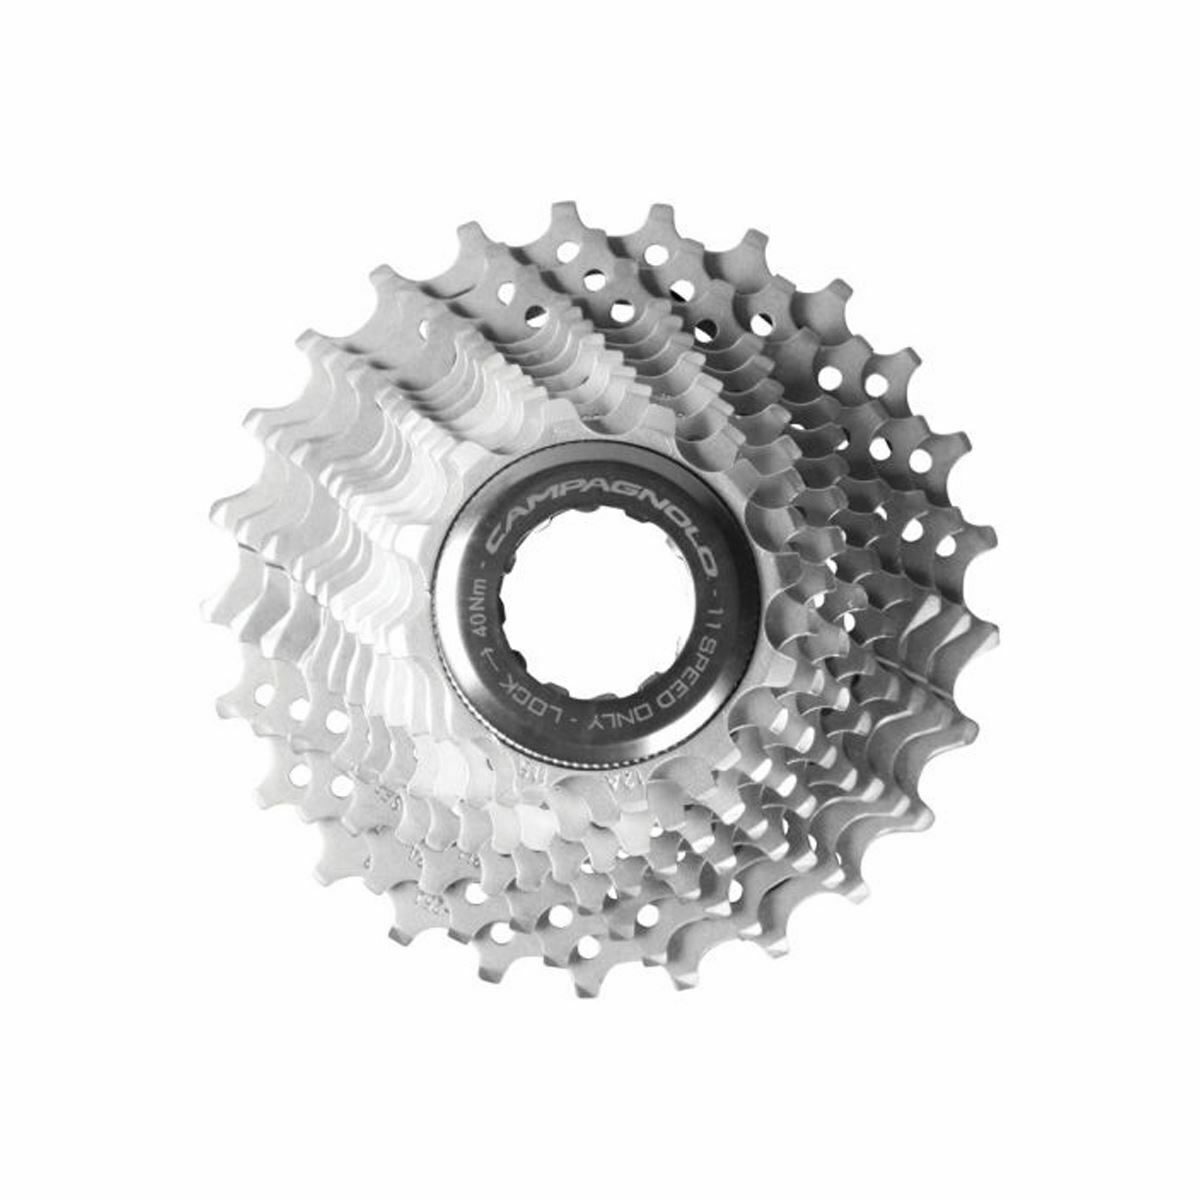 Campagnolo Record Cassettes 11 Speed US  Mounted On Special Frames 11-25T  enjoying your shopping